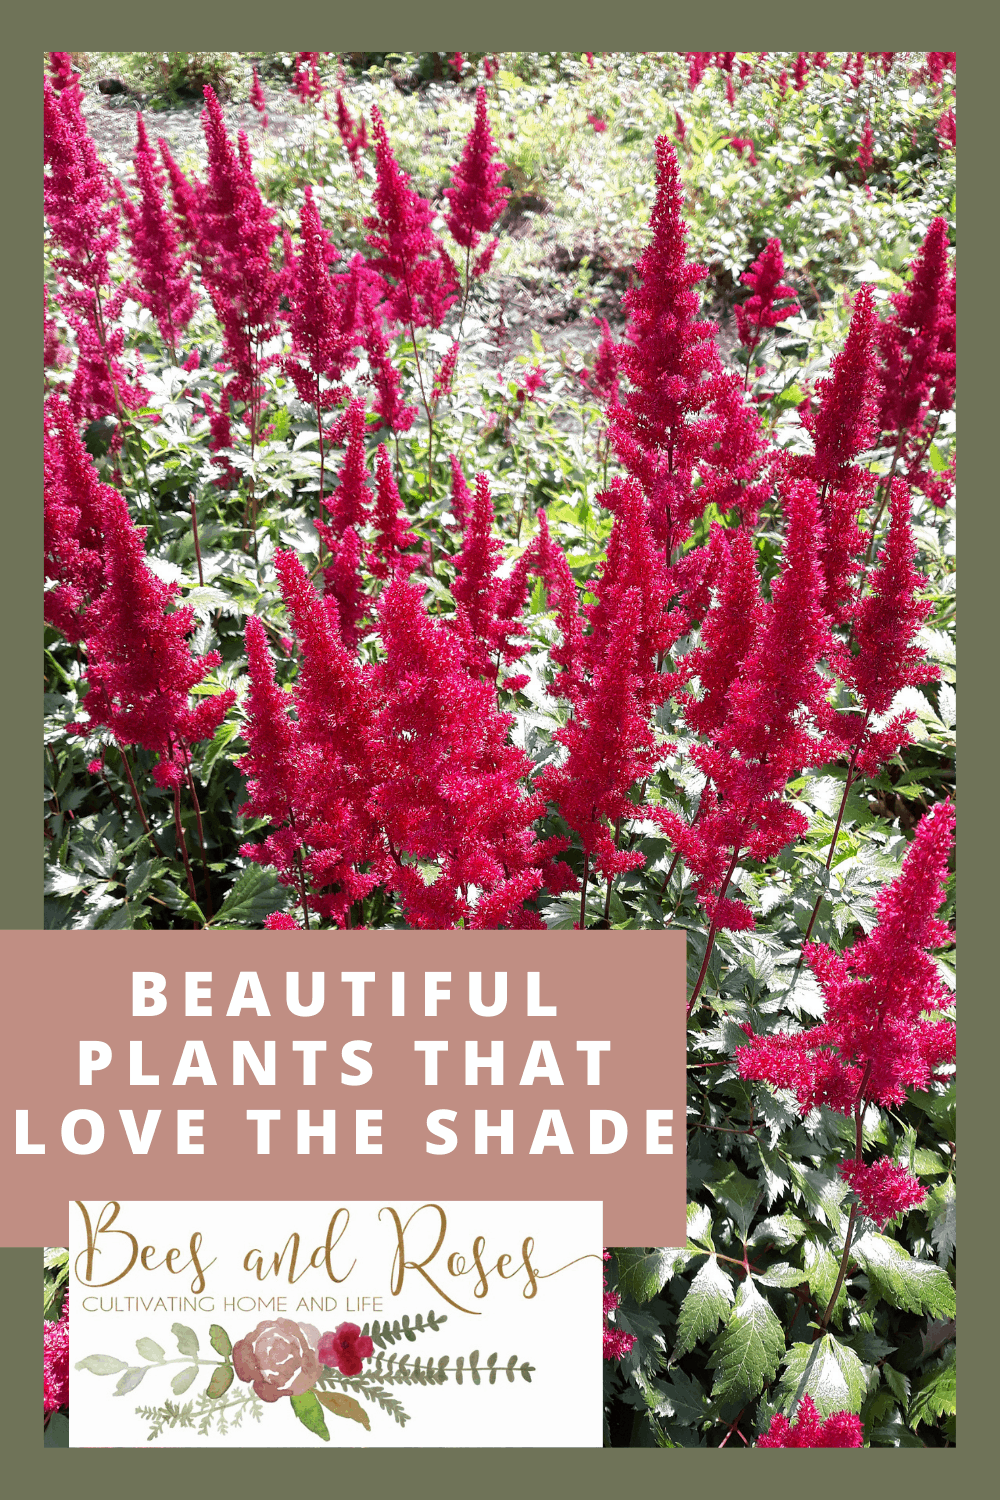 Beesandroses.com makes gardening easy and accessible for everyone! Find the best plants for your lifestyle. These shade-loving plants are gorgeous and easy to keep alive!